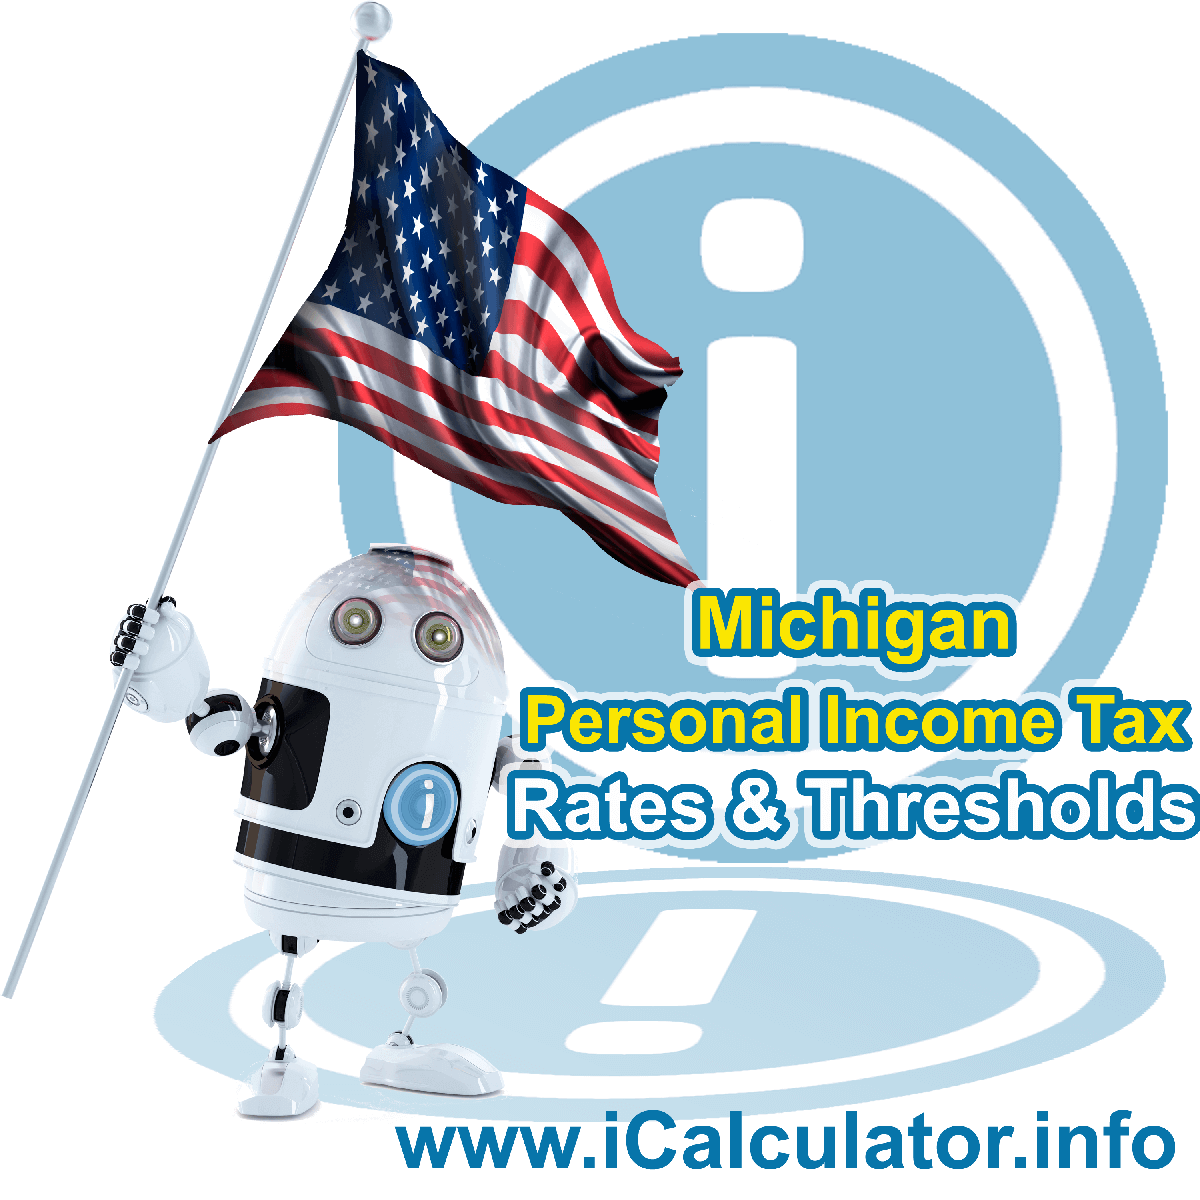 Michigan State Tax Tables 2015. This image displays details of the Michigan State Tax Tables for the 2015 tax return year which is provided in support of the 2015 US Tax Calculator